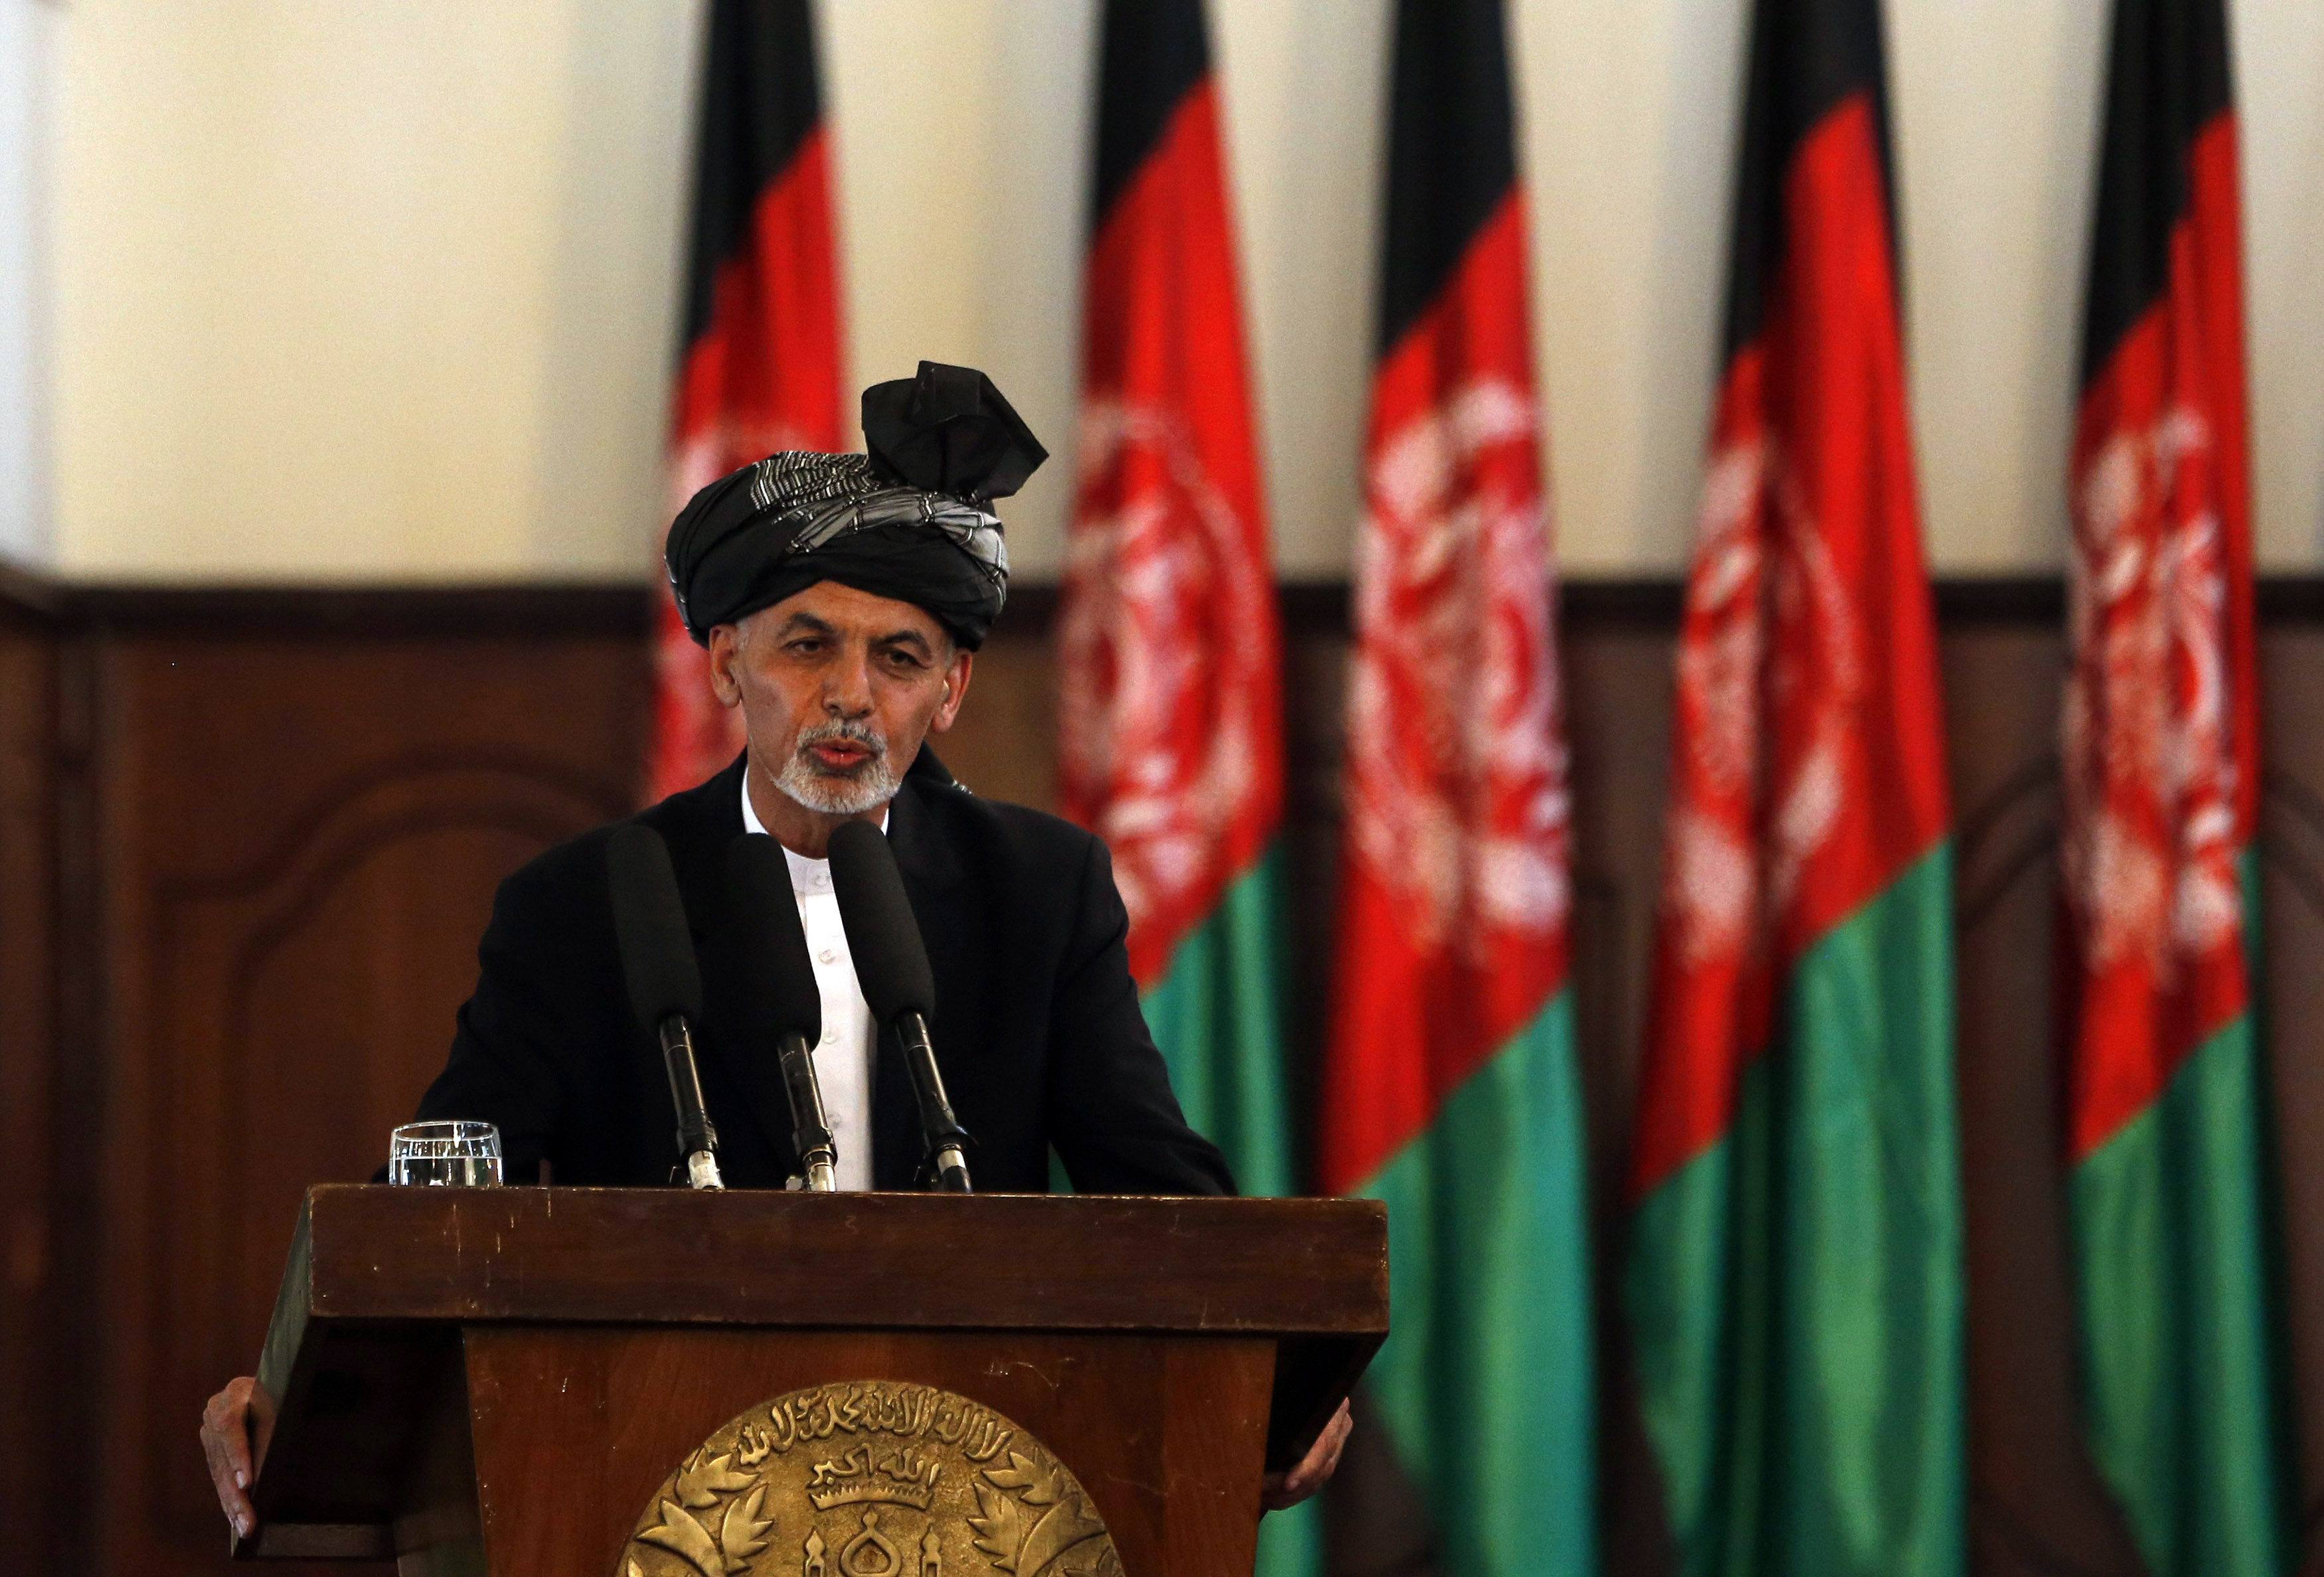 Afghanistan's new President Ashraf Ghani Ahmadzai speaks during his inauguration as president in Kabul on September 29, 2014.